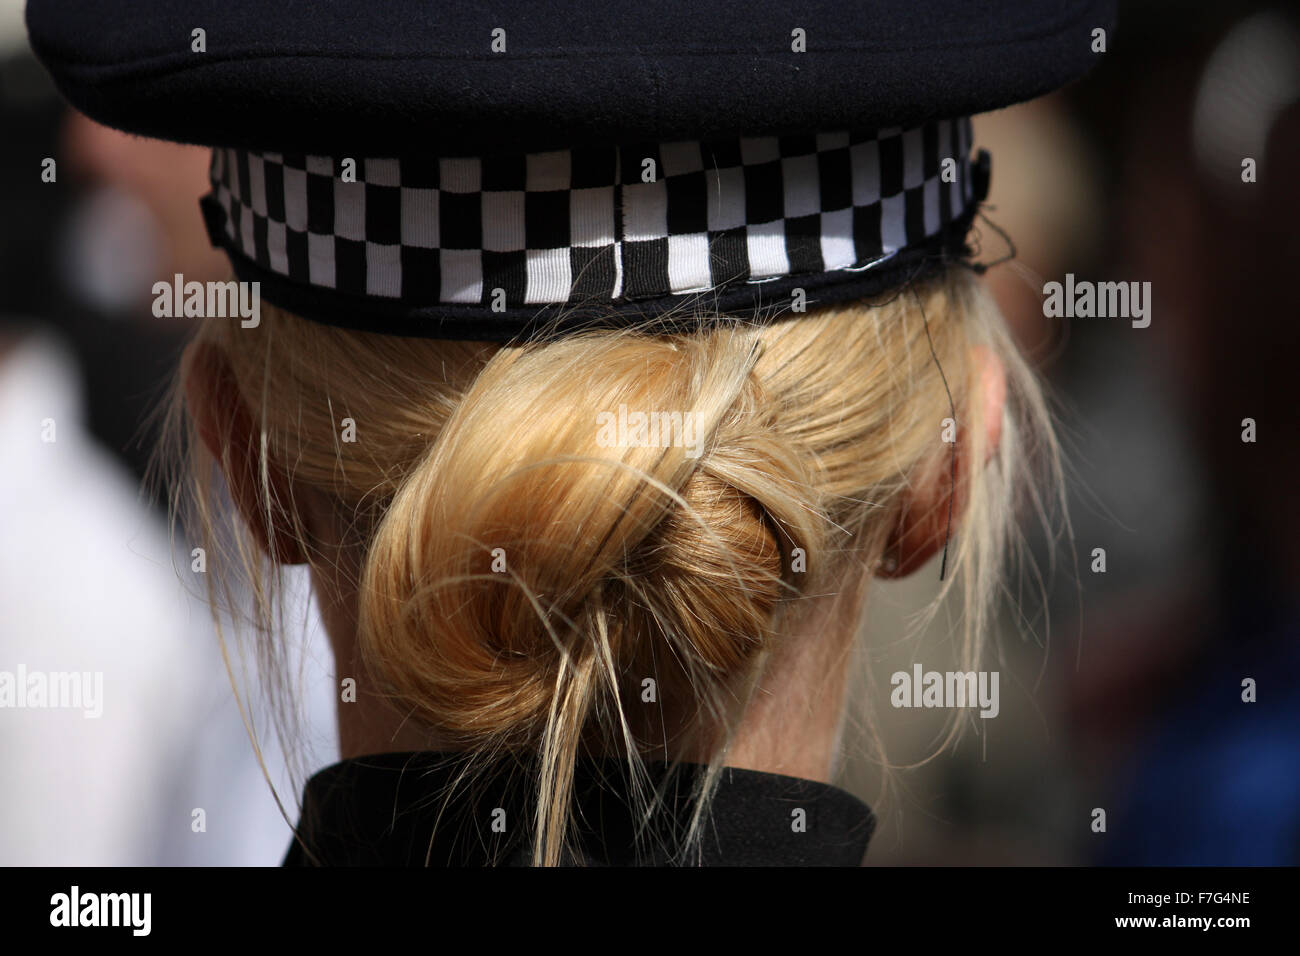 A rear photograph of a blonde Kent police woman and here hair tied up behind her and tucked into her police cap - Stock Image